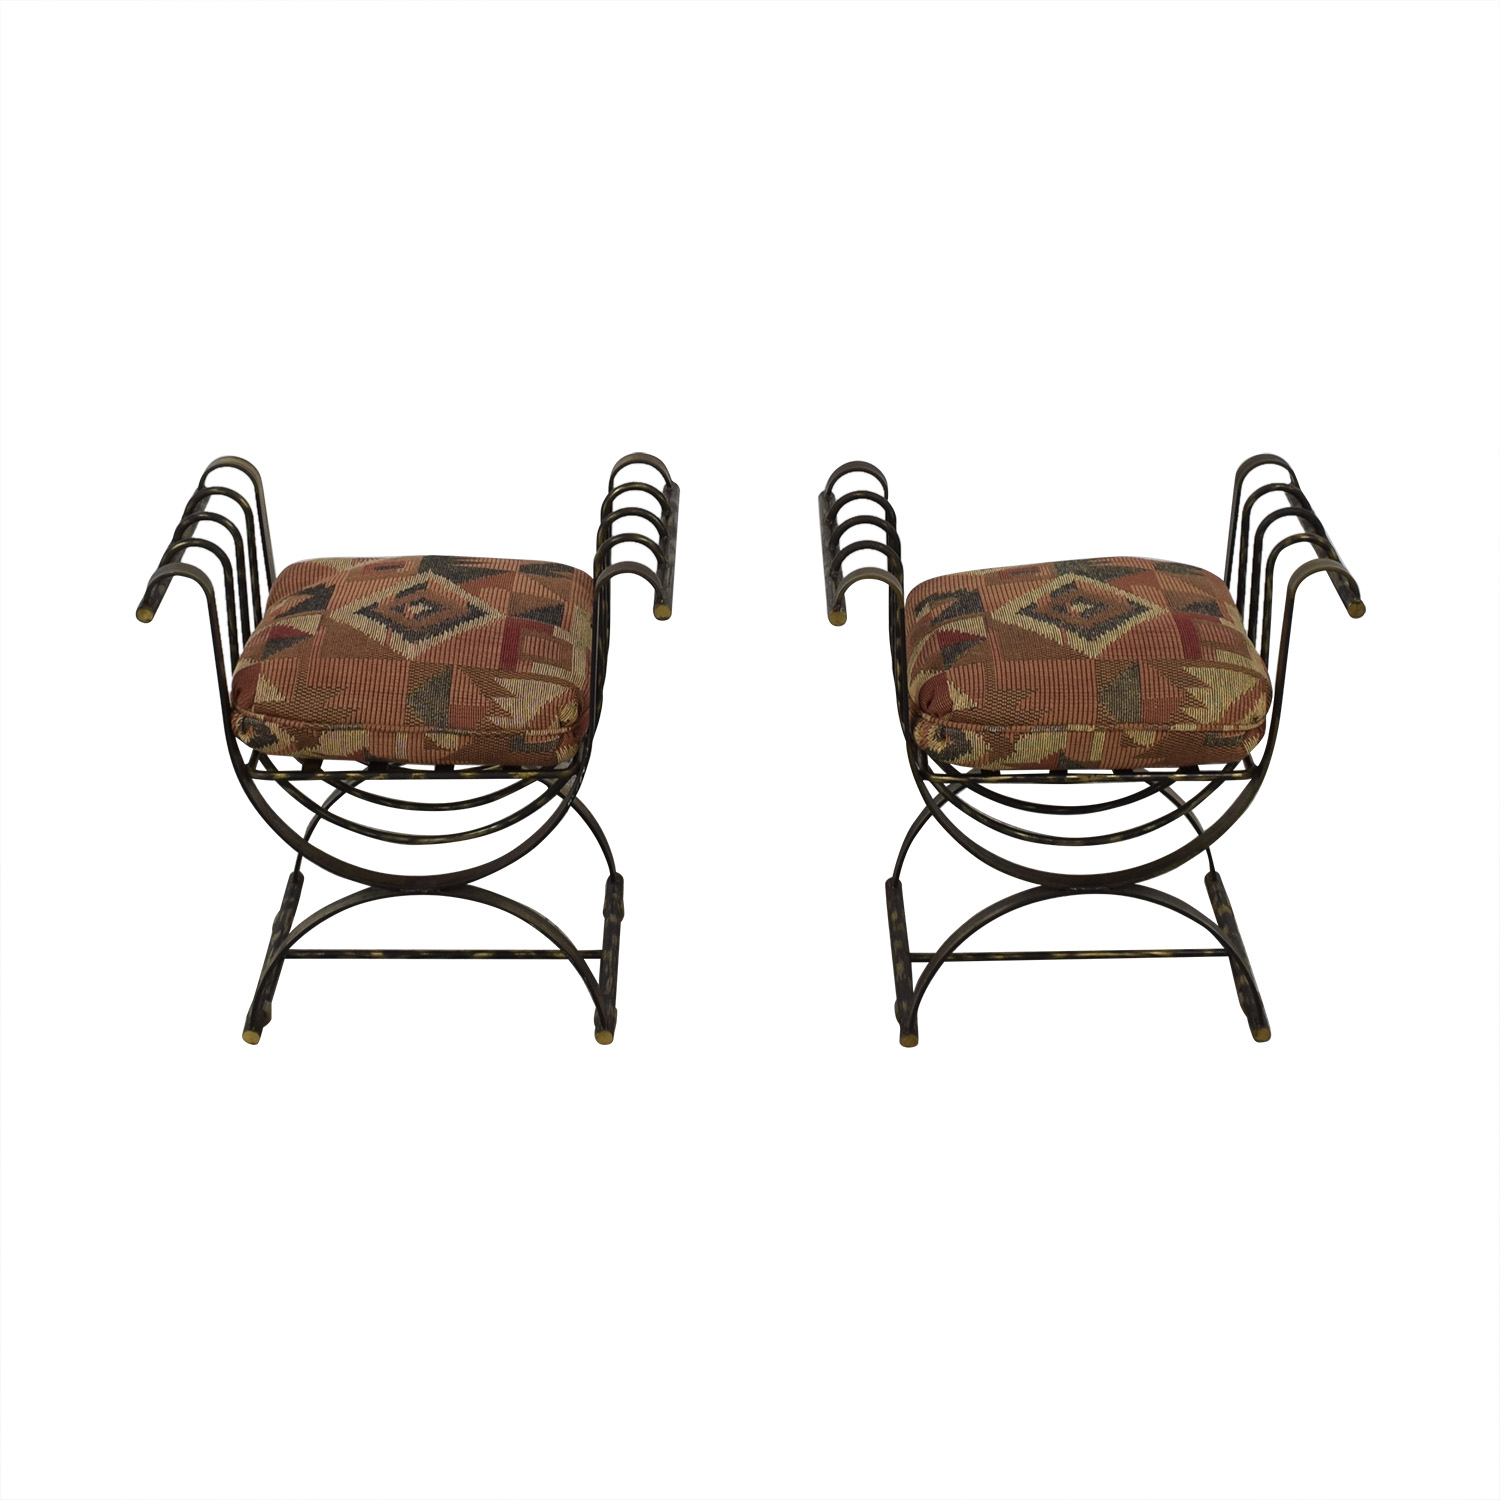 Wrought Iron Decorative Seats for sale